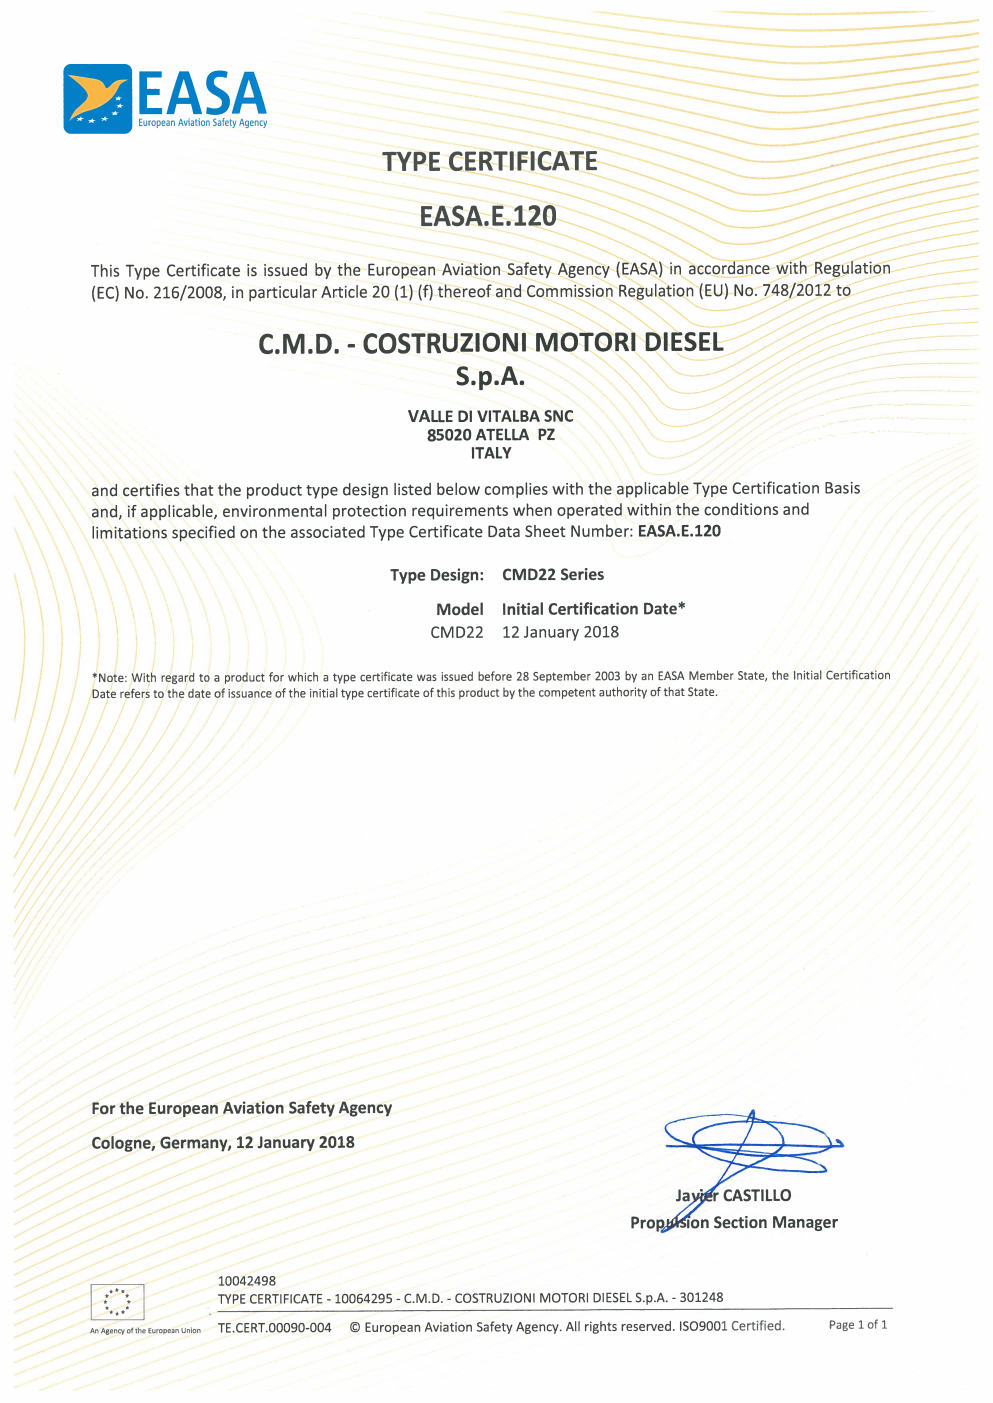 Cmd Obtains Easa Type Certificate For Cmd22 Gasoline Engine In Vla